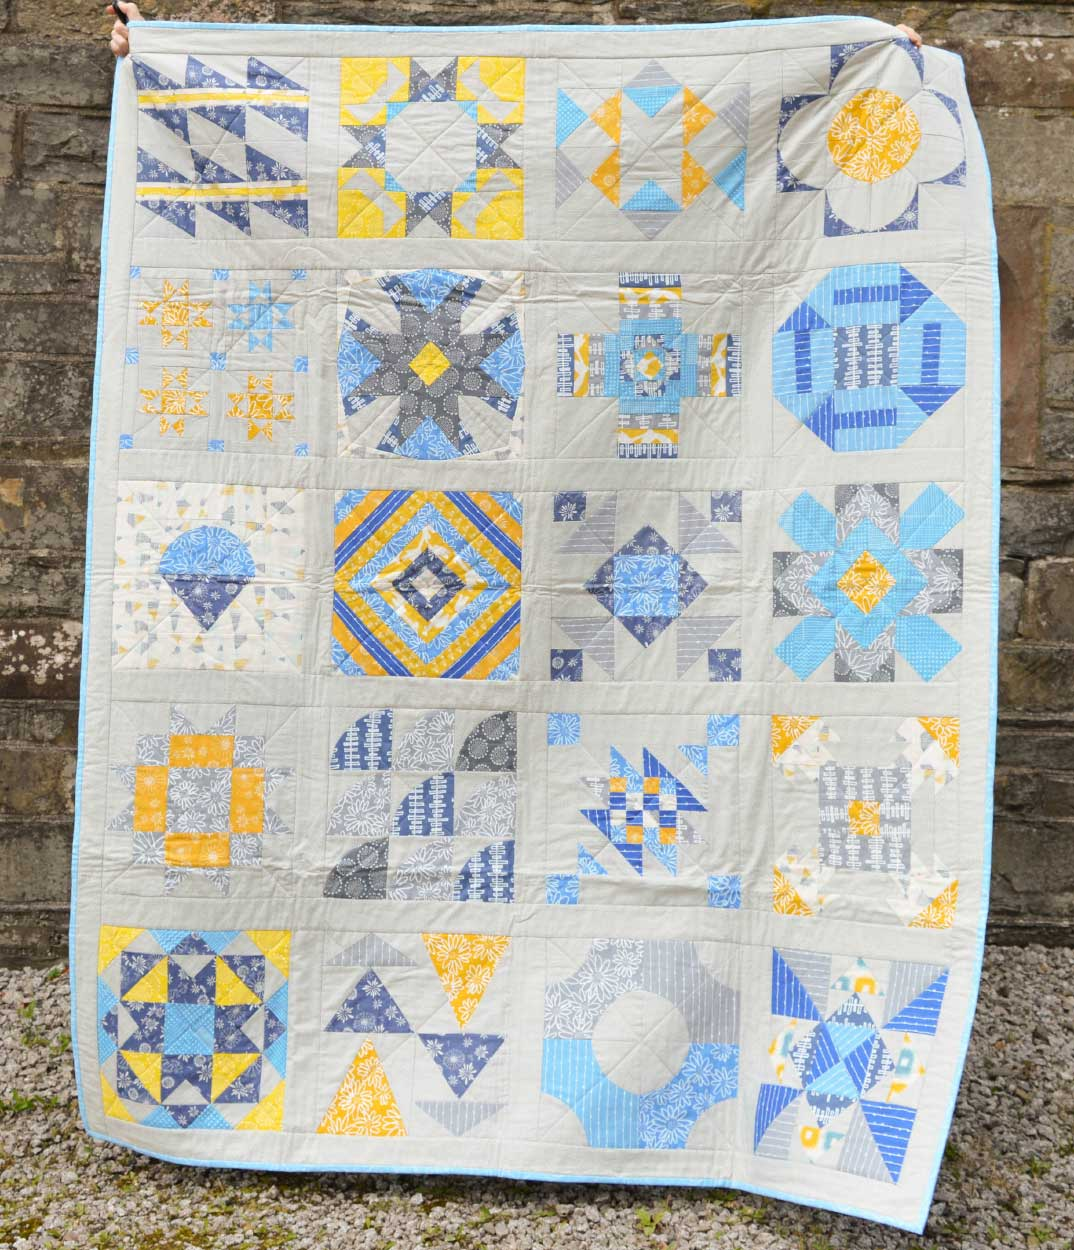 Quilts for Grenfell - Dumfries & Galloway Modern Quilt Guild (DGMQG) // 2016 Summer Sampler Quilt